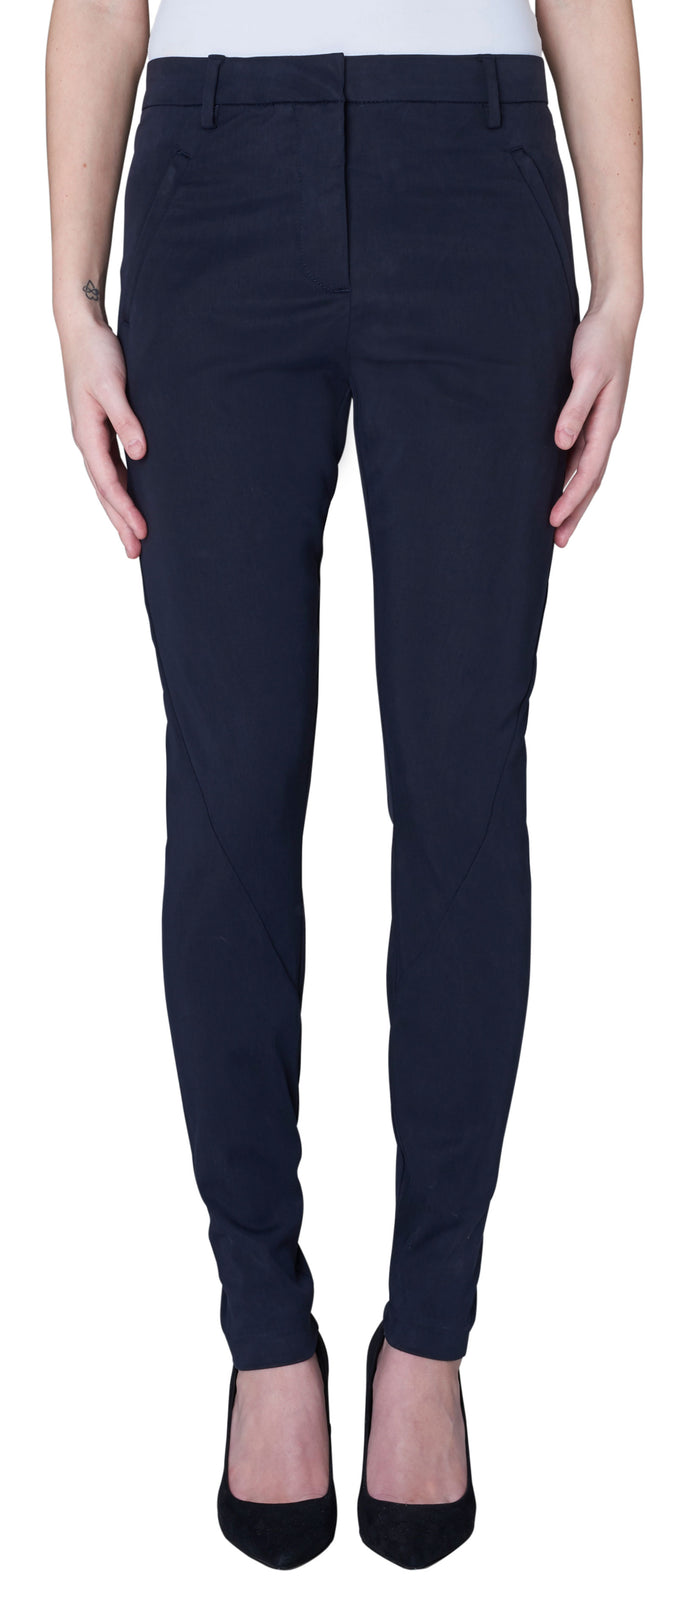 Five Units Angelie Pant in Horizontal Navy